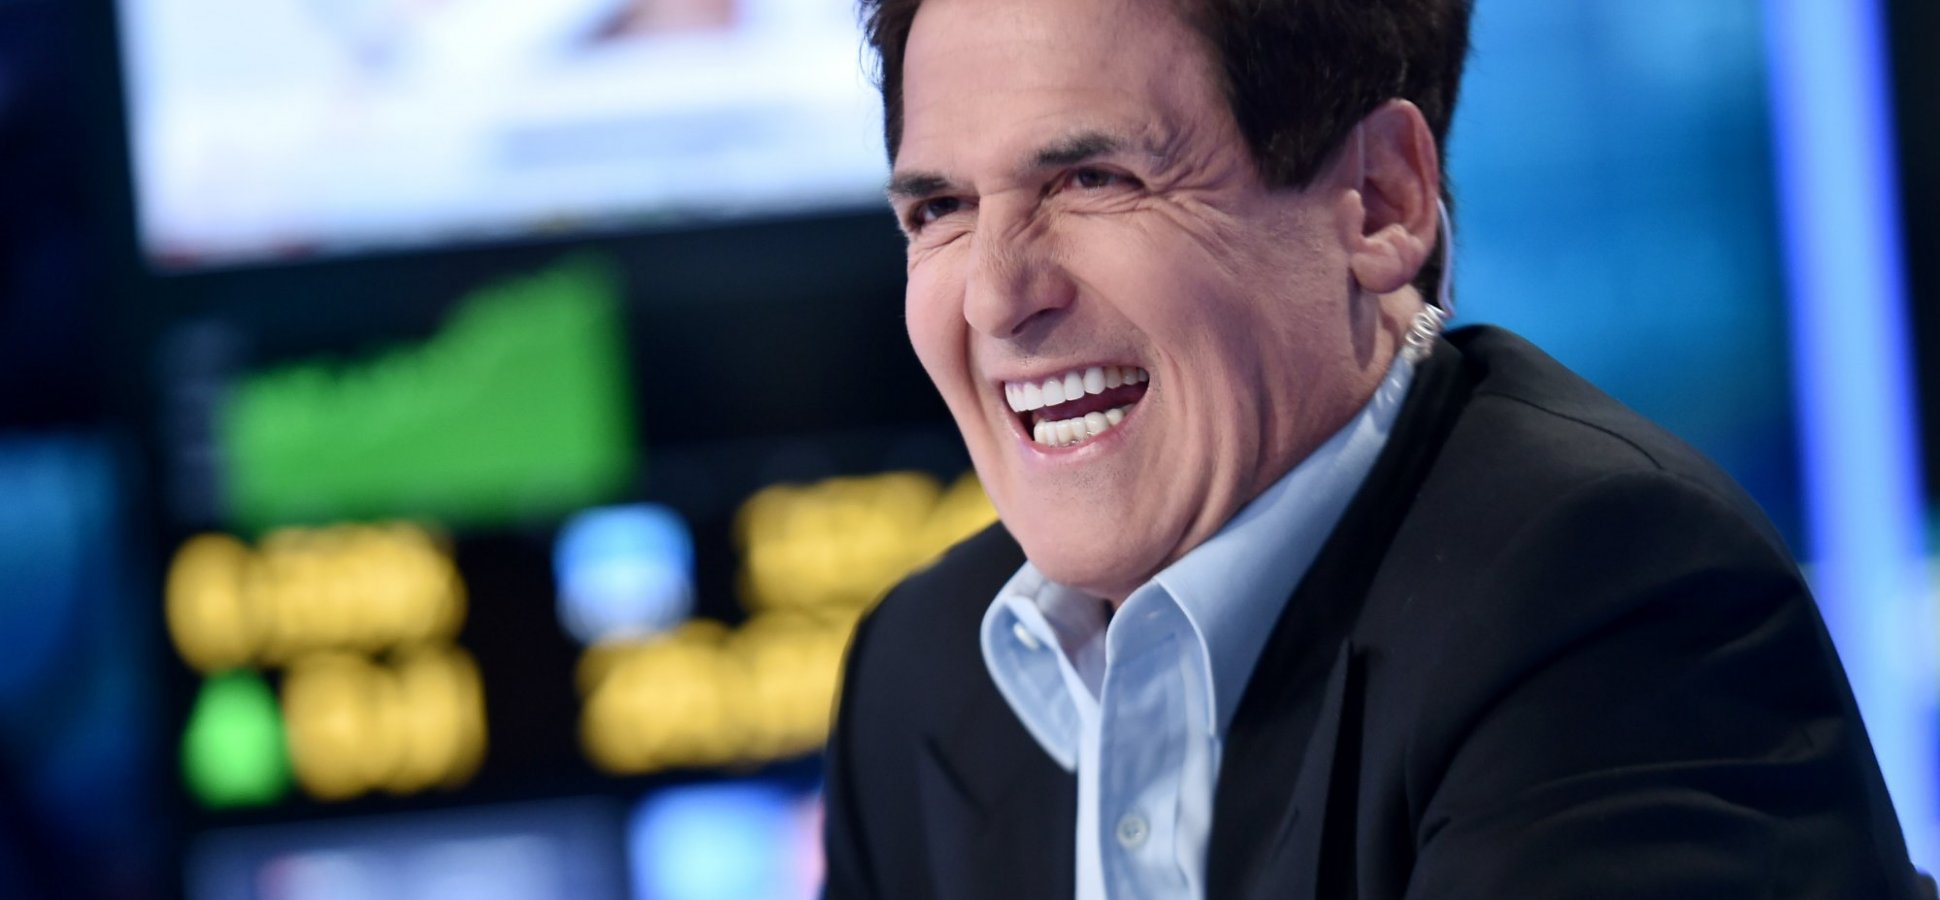 Mark Cuban Just Revealed a Truly Stunning Thing About Amazon and Netflix. Here's the 1 Big Lesson to Take Away